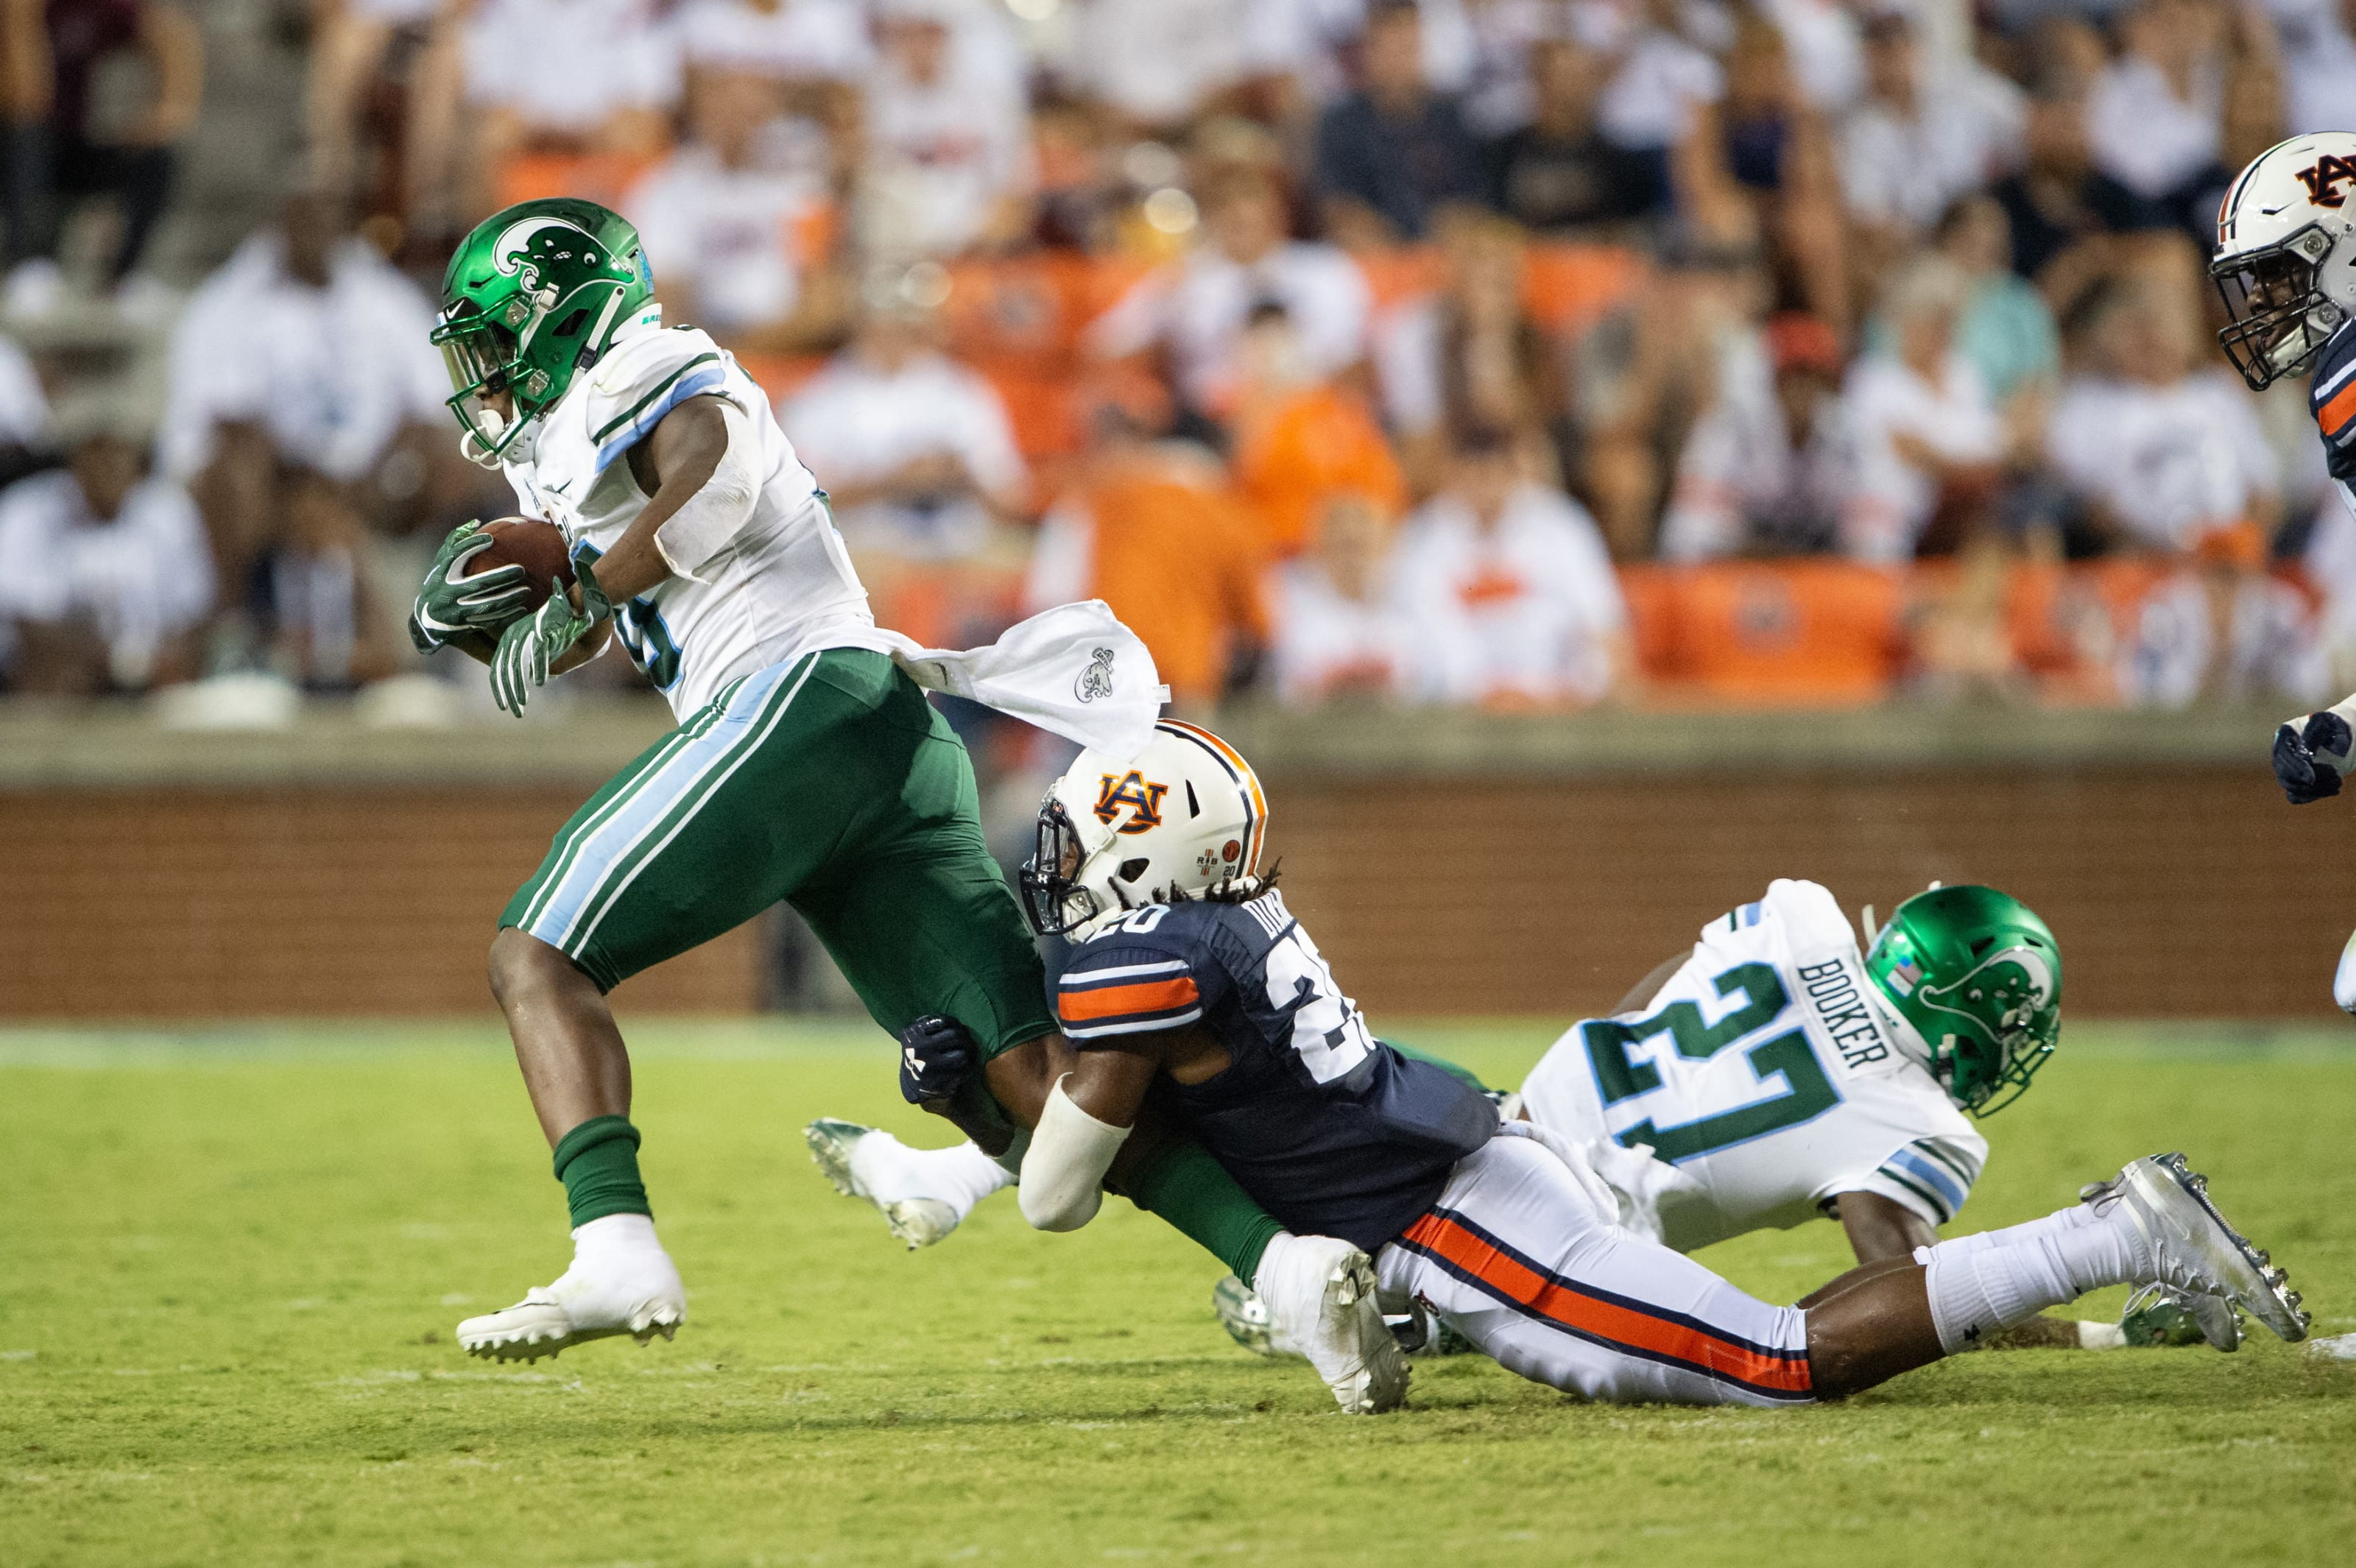 Auburn Football: the Good, the Bad, and the Ugly after Tulane